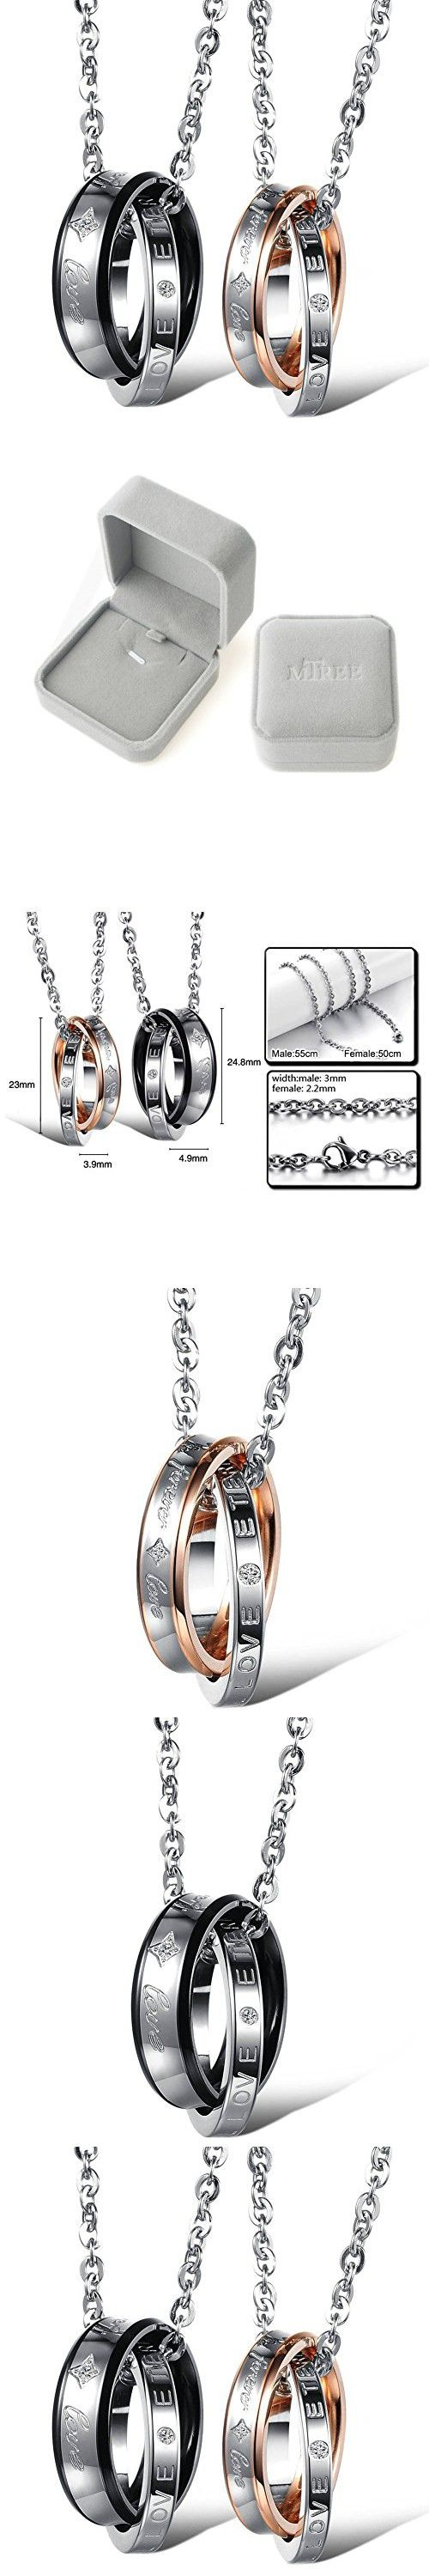 M-Tree His and Hers Couples Necklaces - Titanium Stainless Steel Fashion Matching Relationship Necklace Color Couple